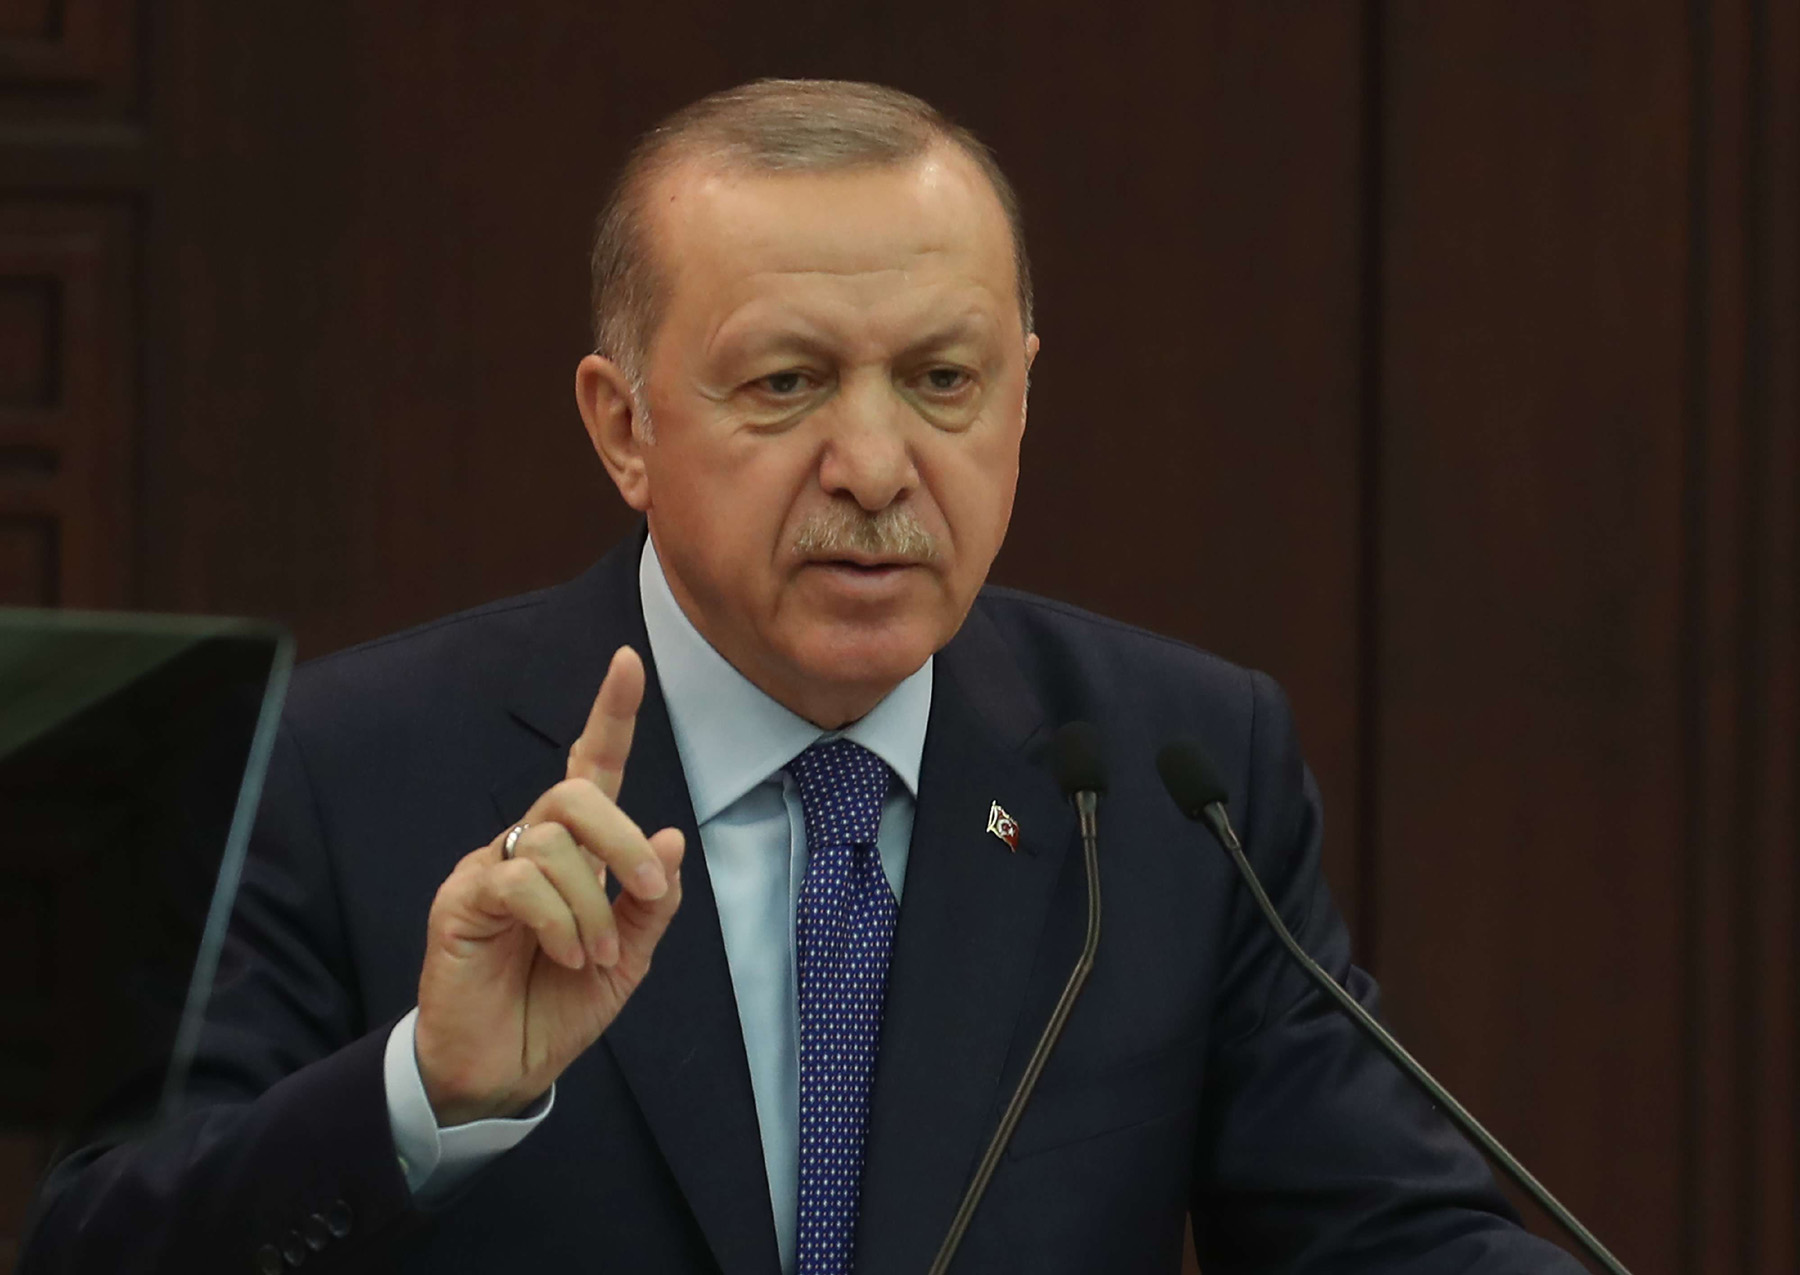 Turkish President Recep Tayyip Erdogan speaks during a news conference at the Cankaya Palace in Ankara, March 18. (AFP)